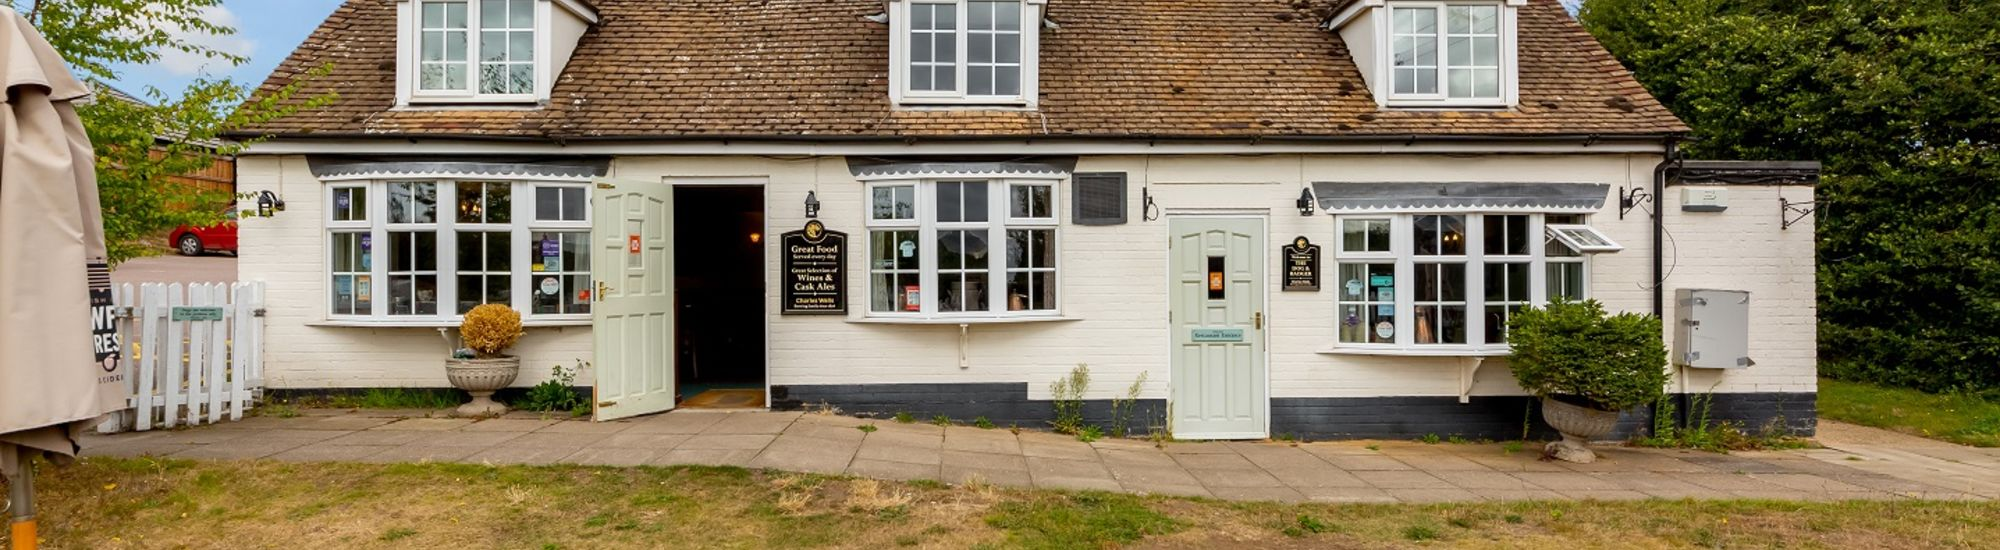 The Dog & Badger, Maulden